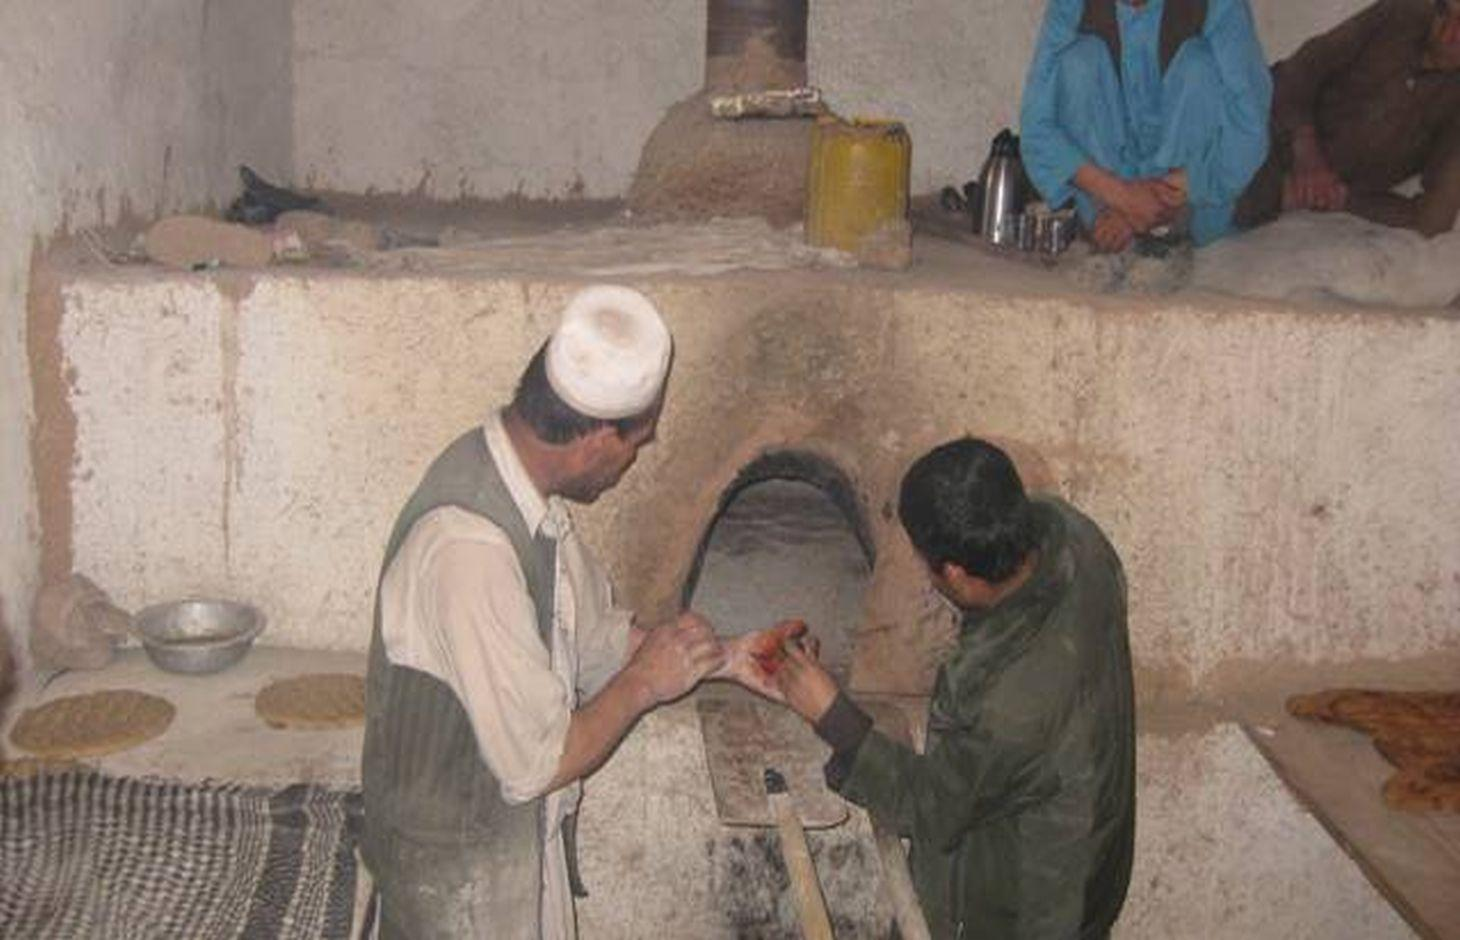 An overview of a community bakery from inside. The bakeries and his assistant are showing the Dash/oven using a torch.